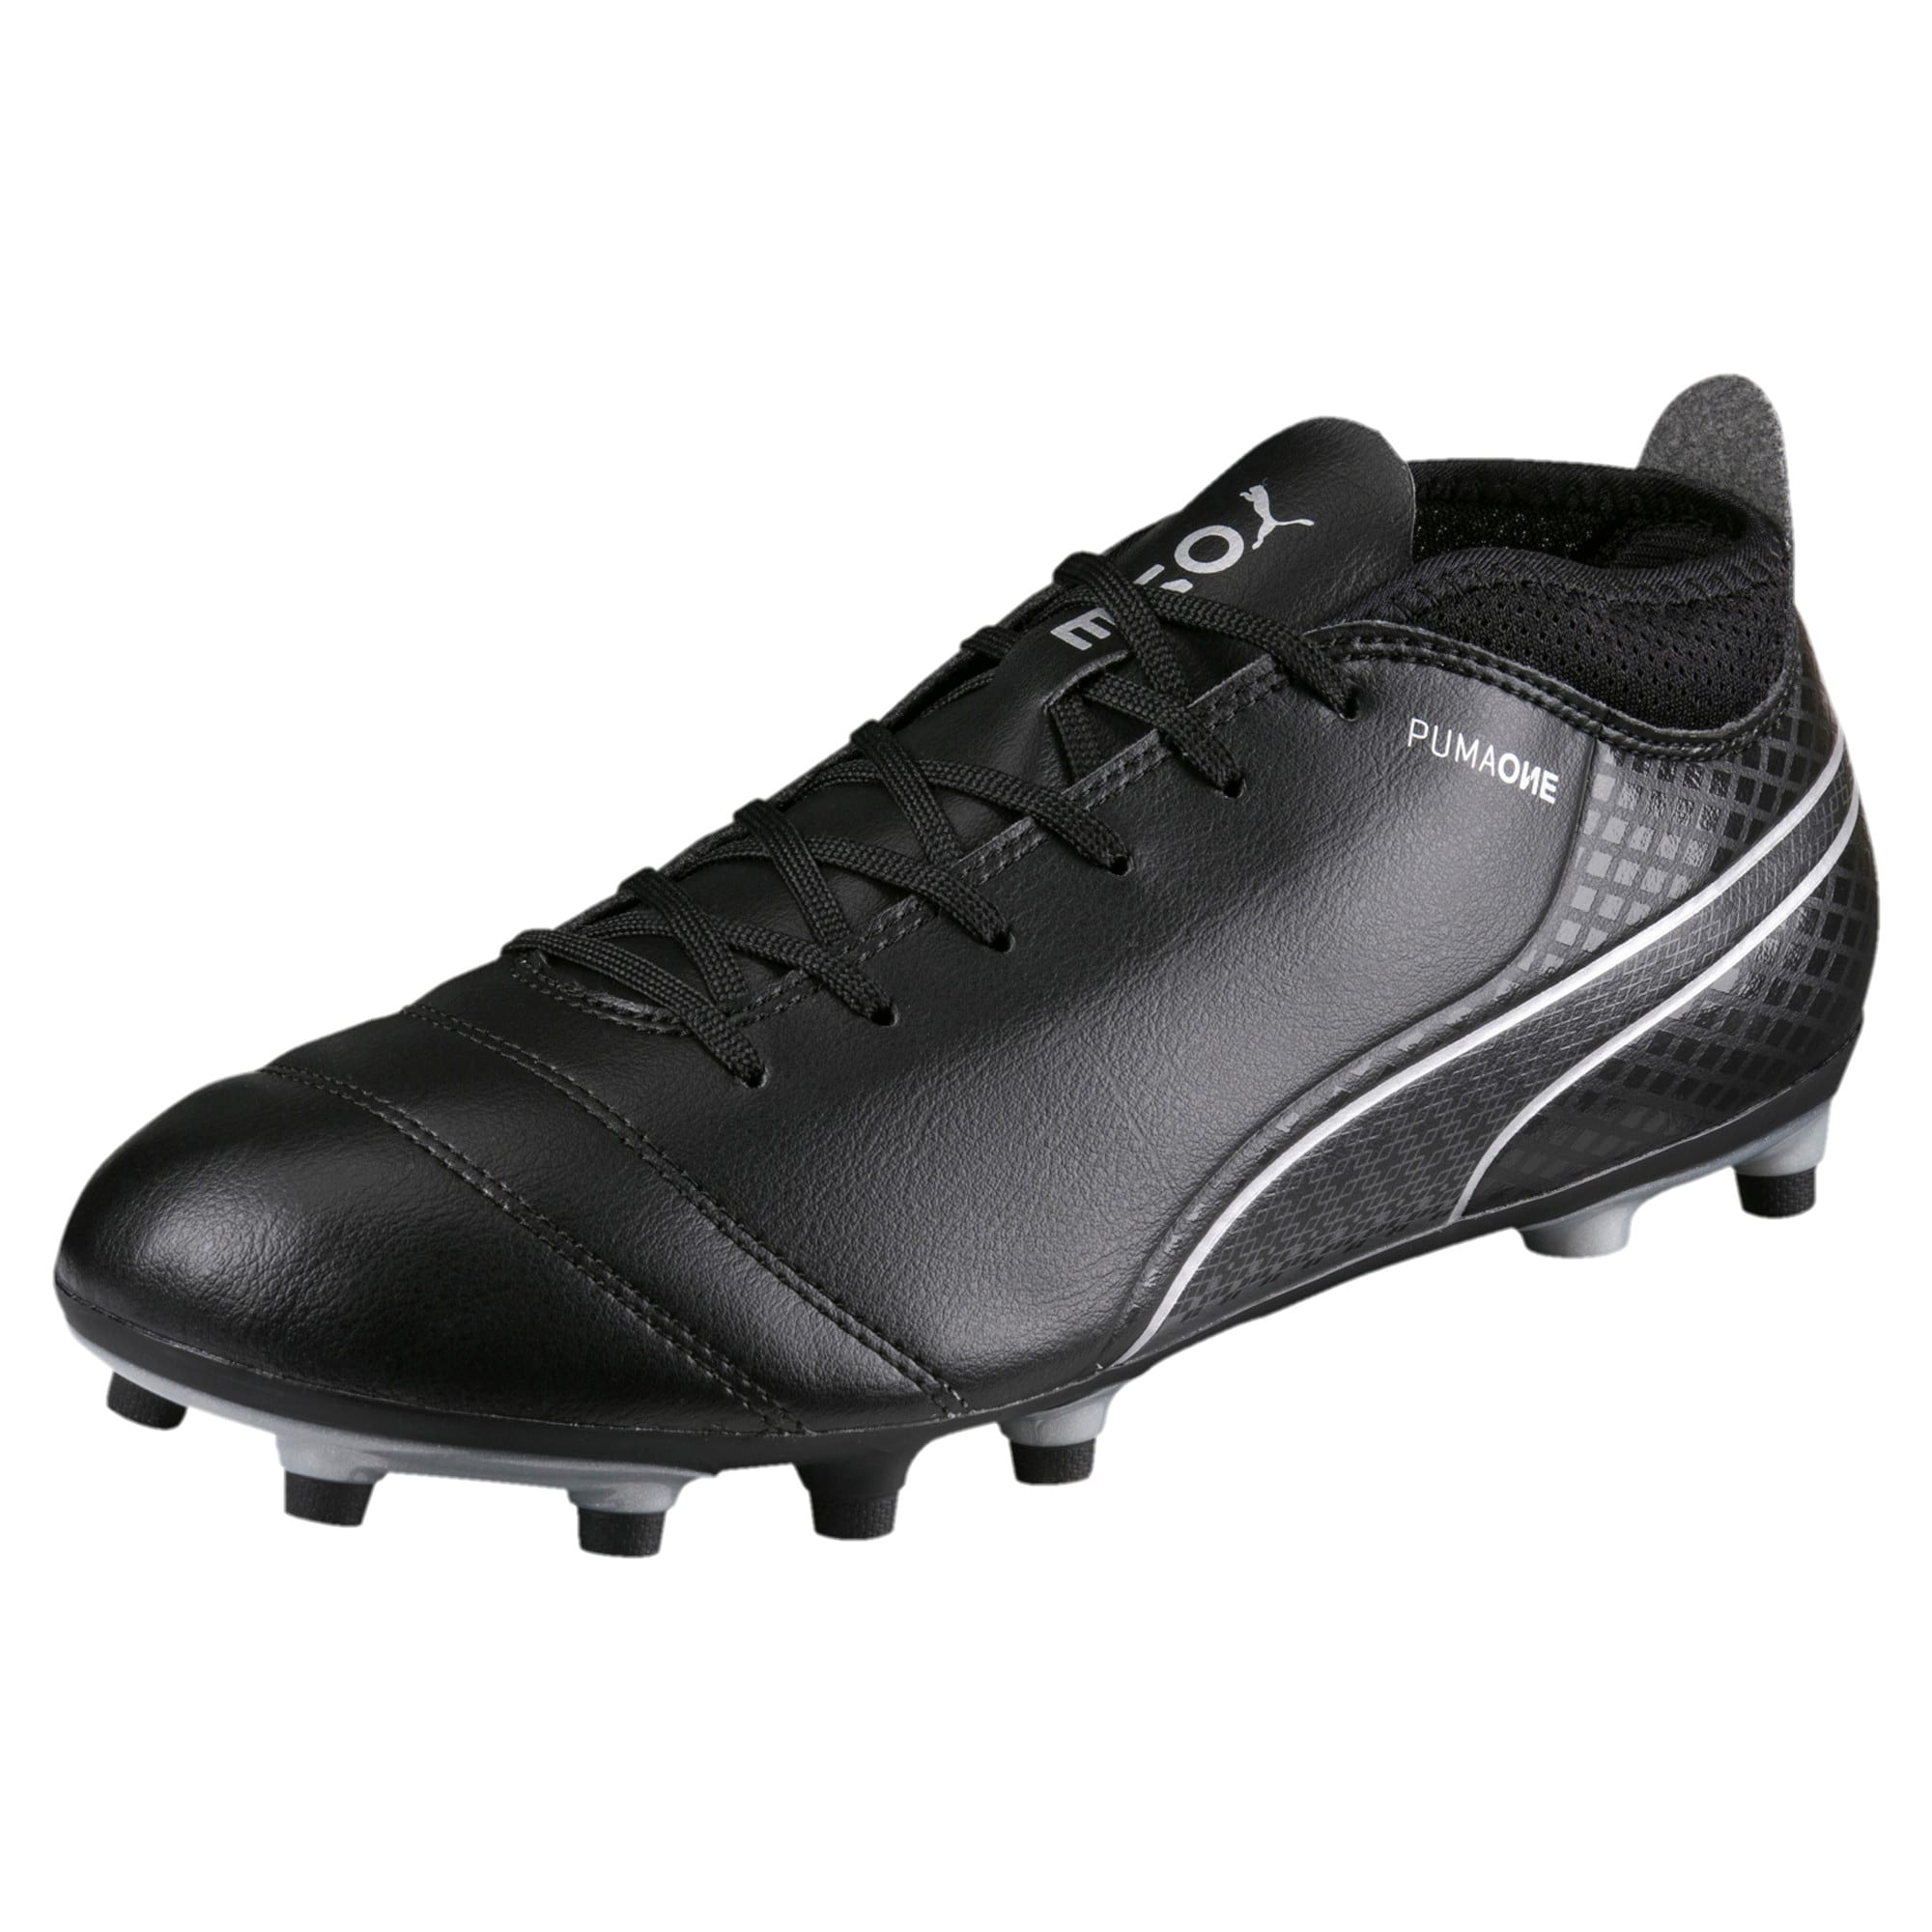 Thumbnail 1 of ONE 17.4 FG Men's Football Boots, Black-Black-Silver, medium-IND